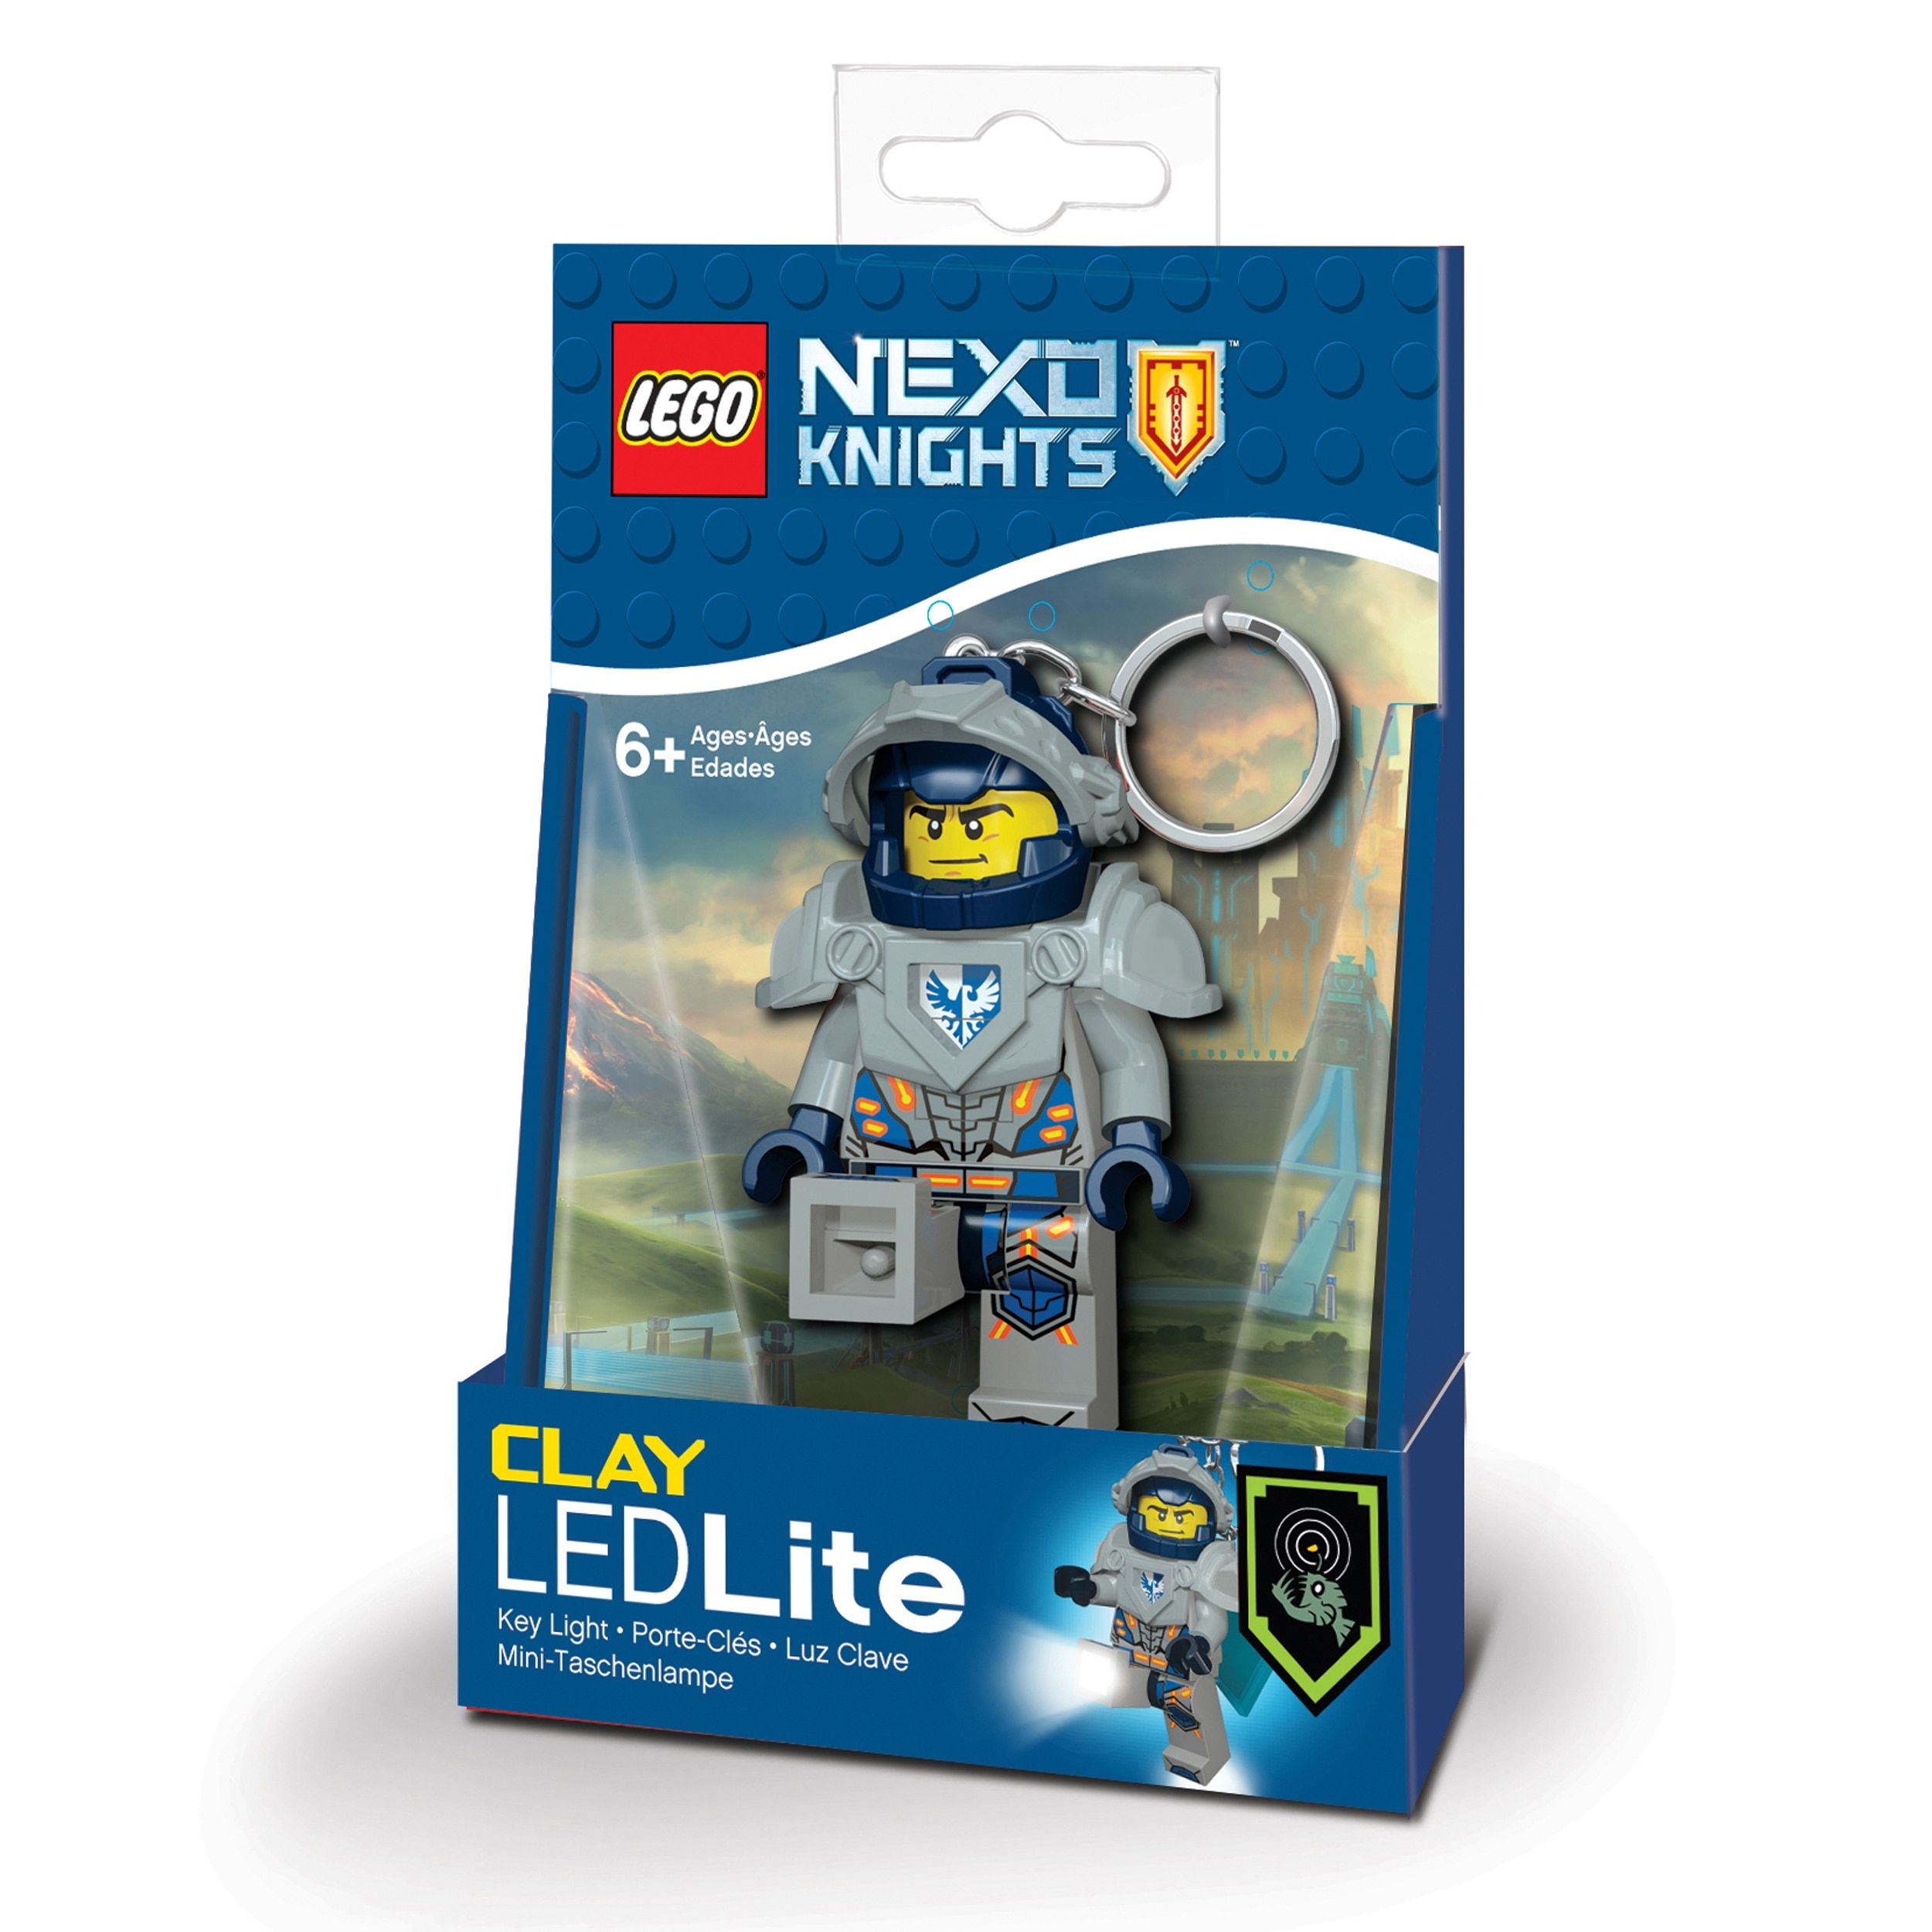 Pin lego 60032 city the lego summer wave in official images on - Lego Nexo Knight Clay Key Light By Lego